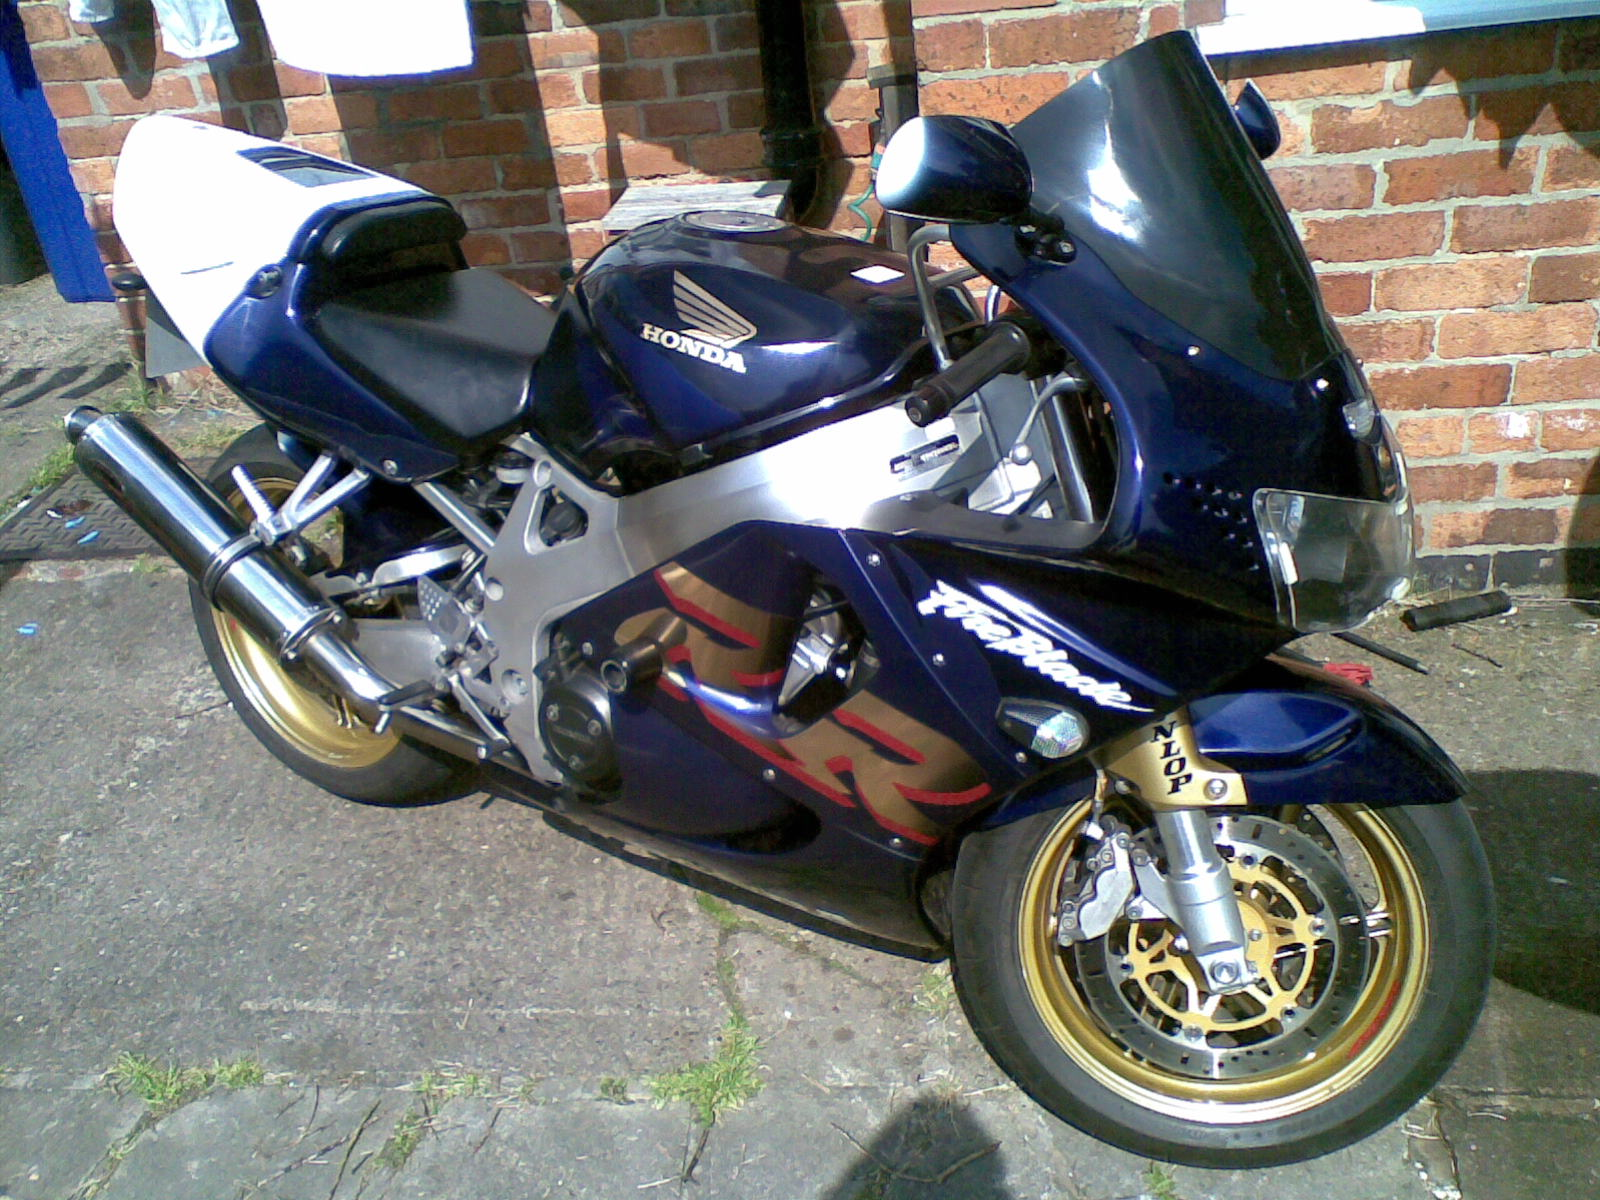 The Honda 919 At MotorBikeSpecs The Motorcycle Specification